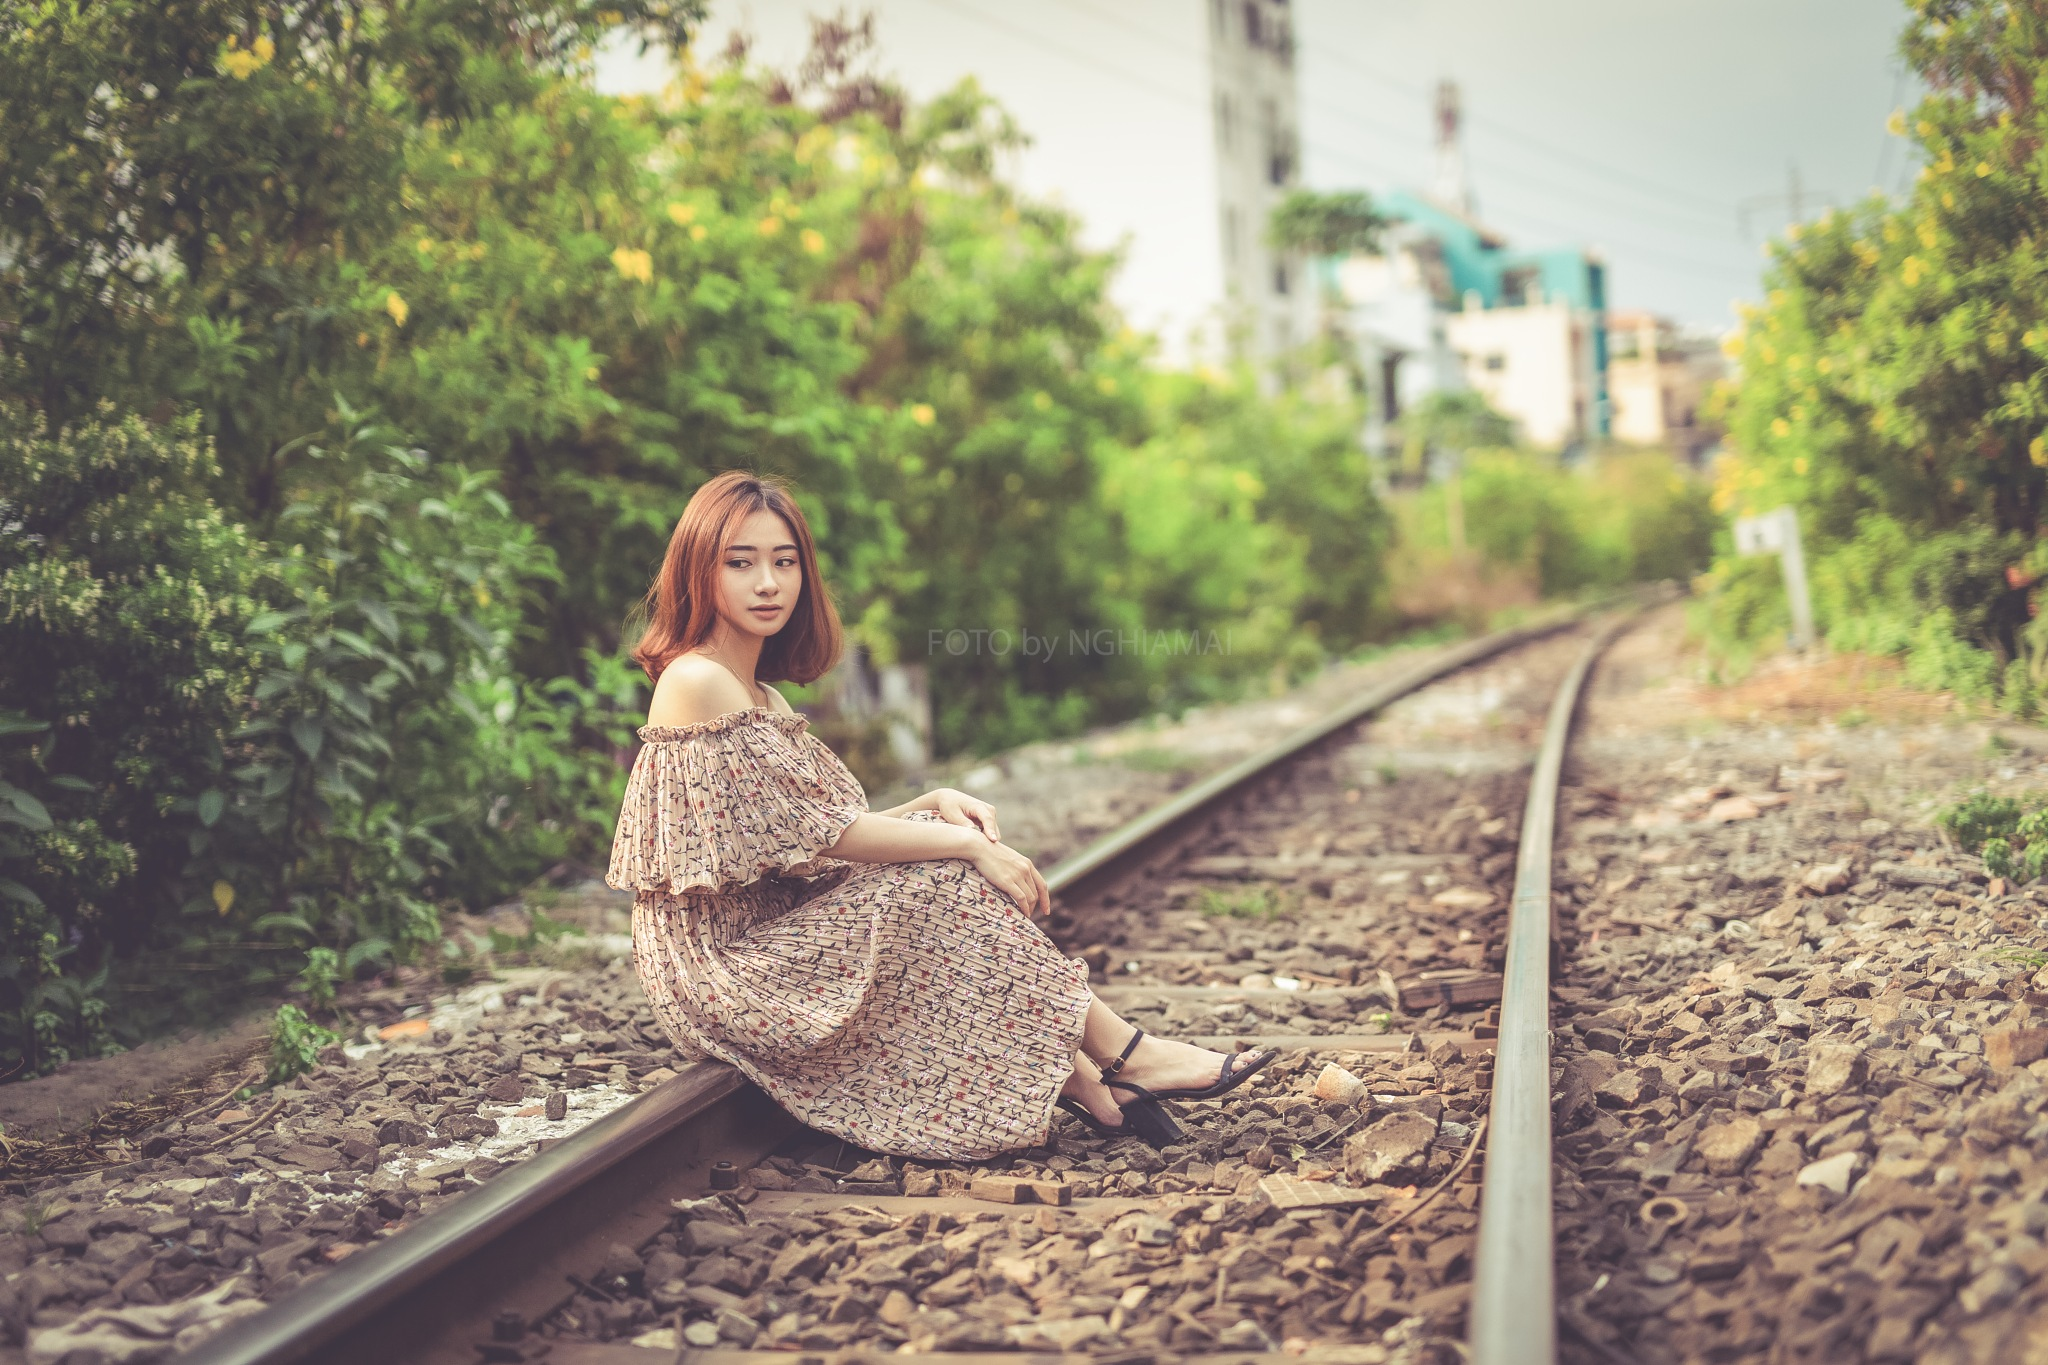 An Afternoon at Railway Station by Nghia Mai